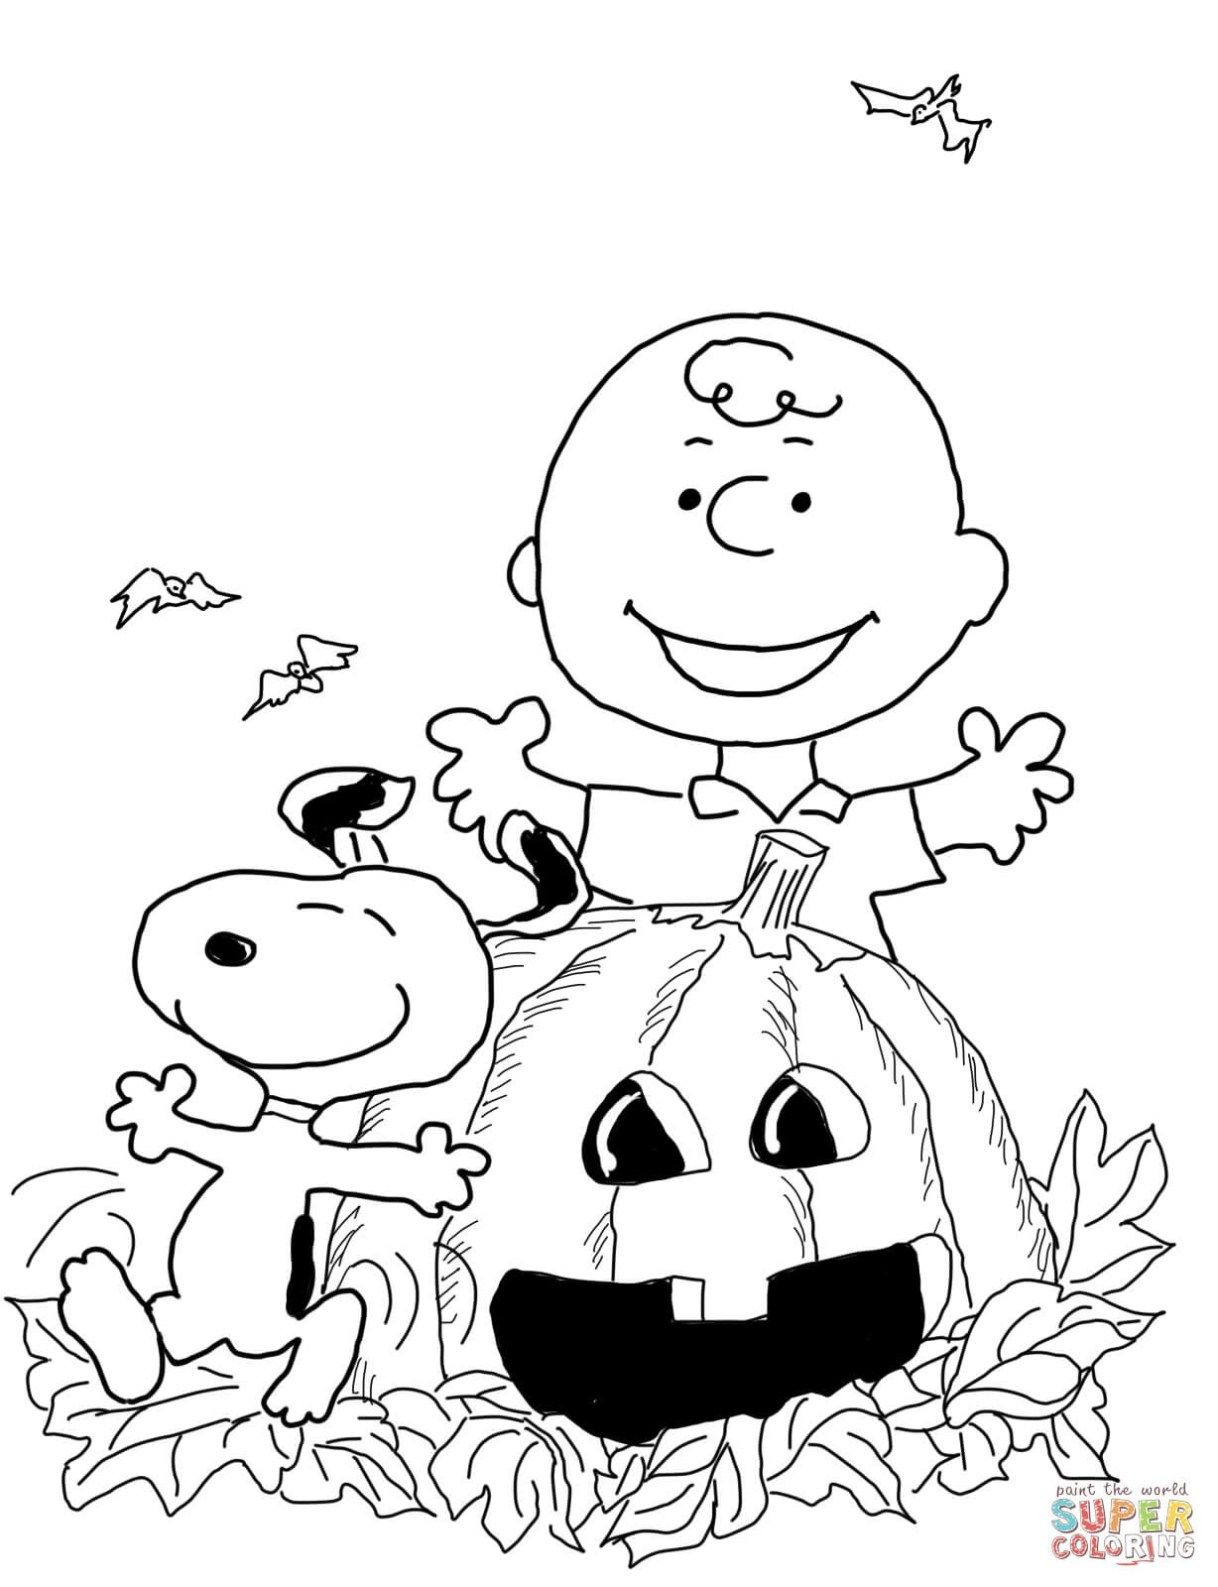 Peanuts Coloring Pages Charlie Brown Halloween Coloring Page Free Printable Coloring Pages Davemelillo Com Halloween Coloring Sheets Snoopy Coloring Pages Halloween Coloring Pictures